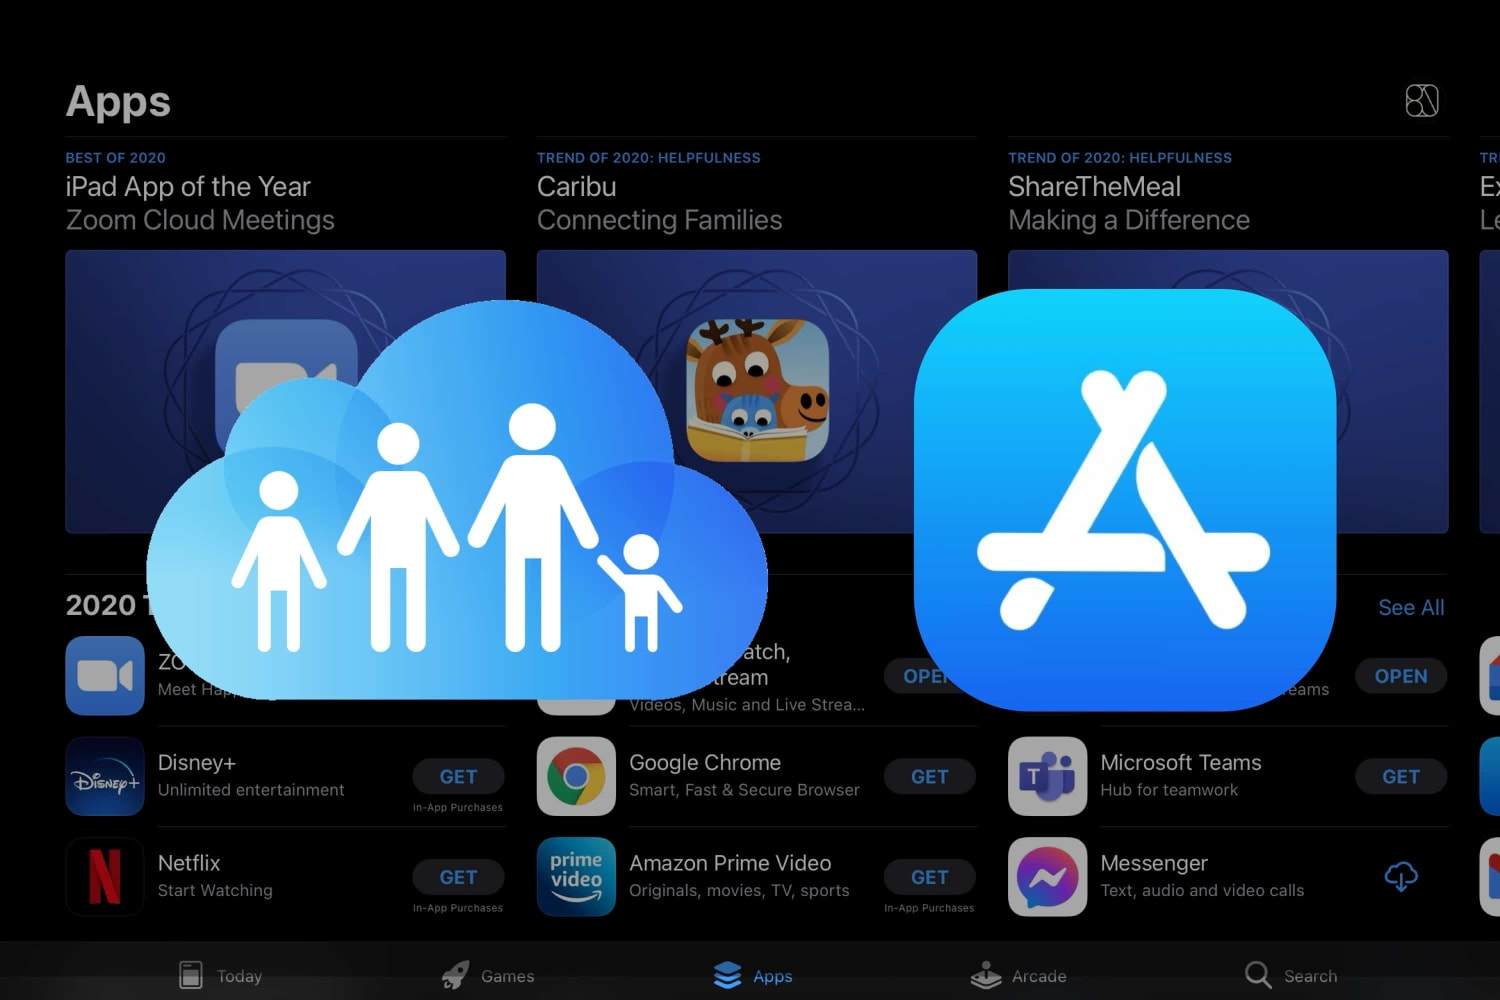 share-app-store-subscriptions-through-family-sharing-20201204-1